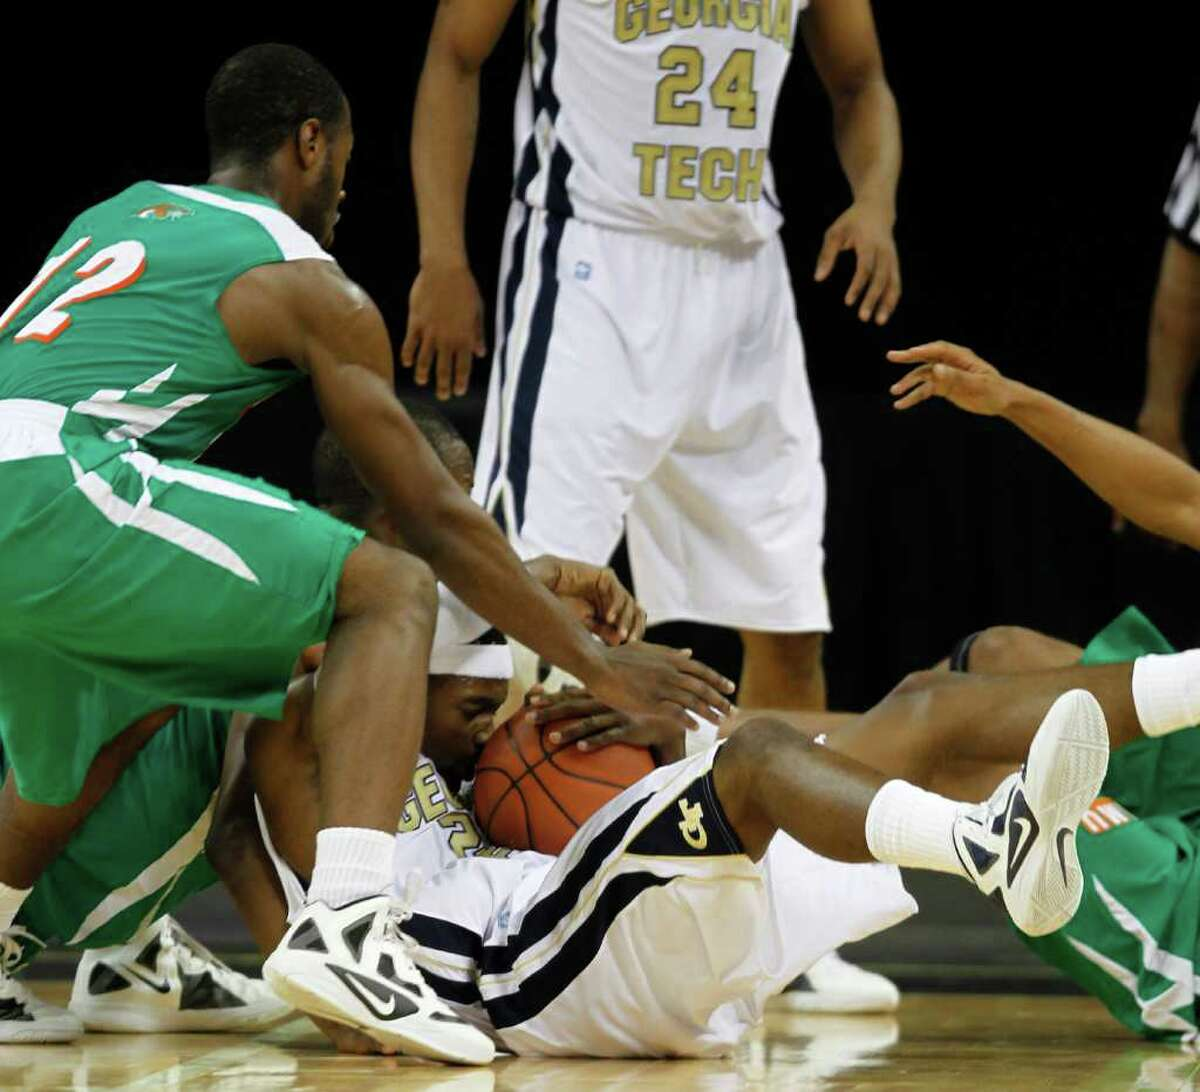 Georgia Tech guard Brandon Reed (23) and Florida A&M forward Reggie Lewis (12), left, scramble for a loose ball in the first half of an NCAA college basketball game in Duluth, Ga., Friday, Nov. 11, 2011. (AP Photo/John Bazemore)